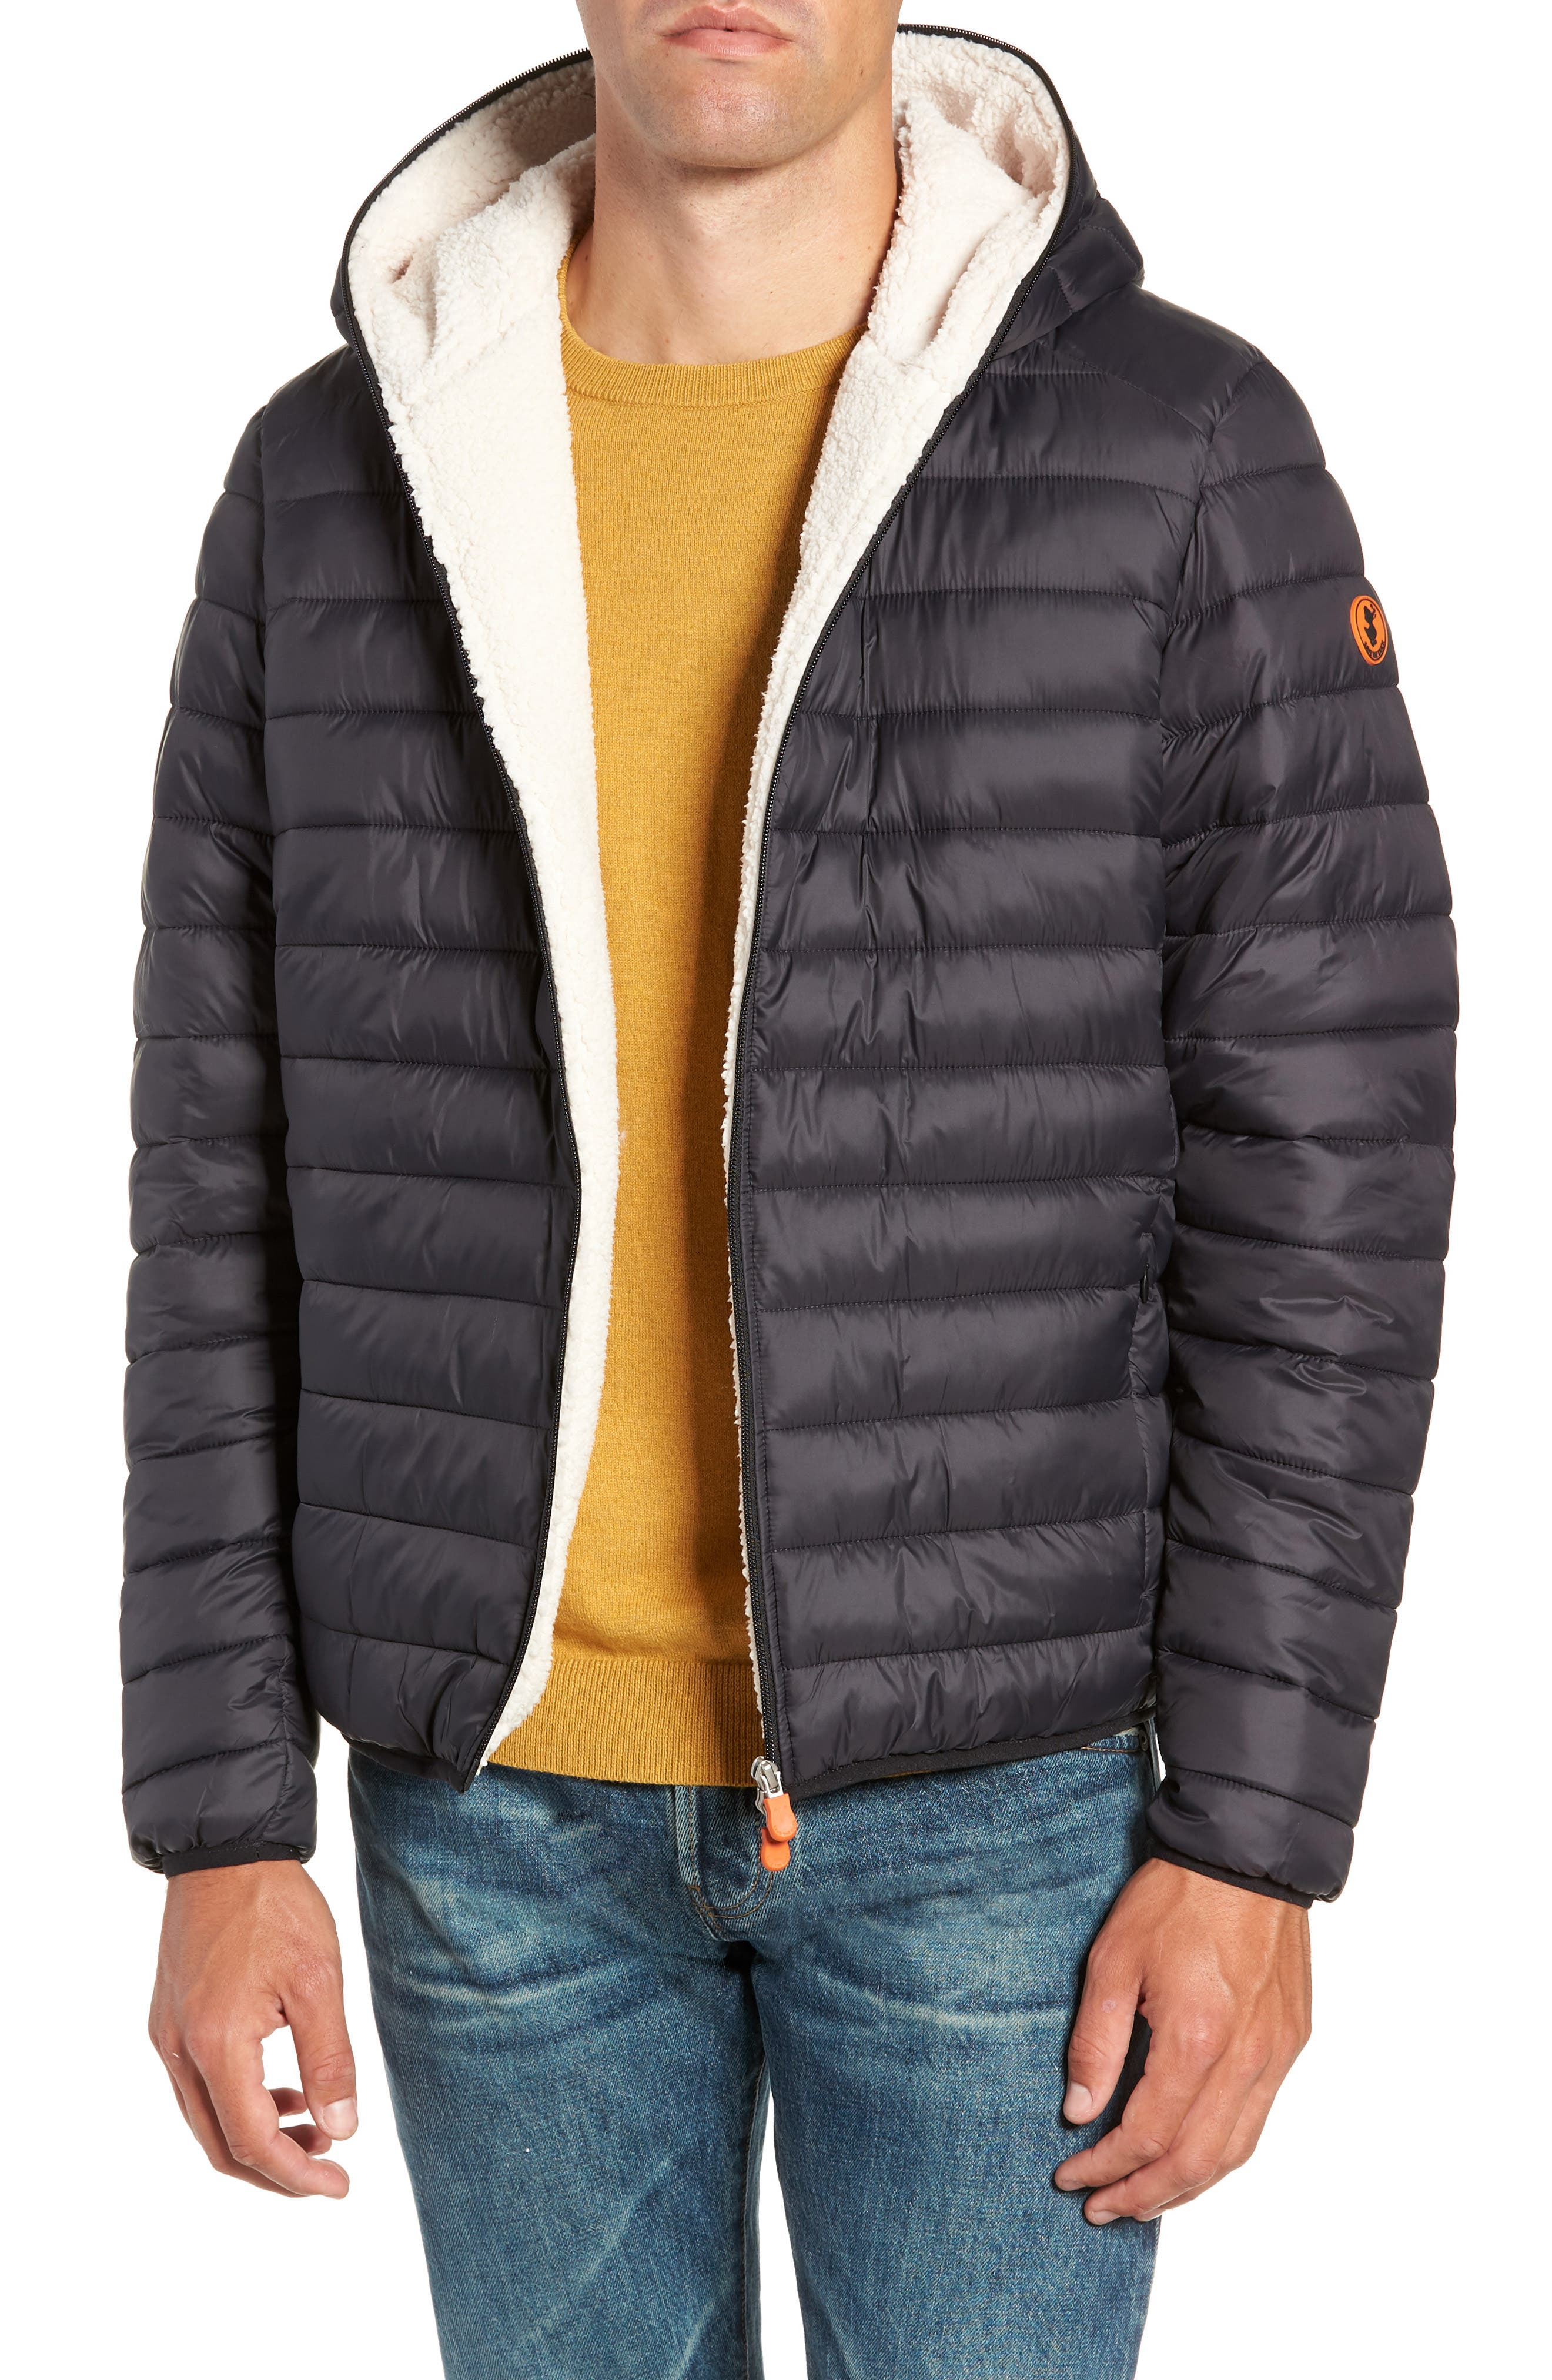 Hooded PLUMTECH<sup>®</sup> Insulated Packable Jacket,                             Main thumbnail 1, color,                             001